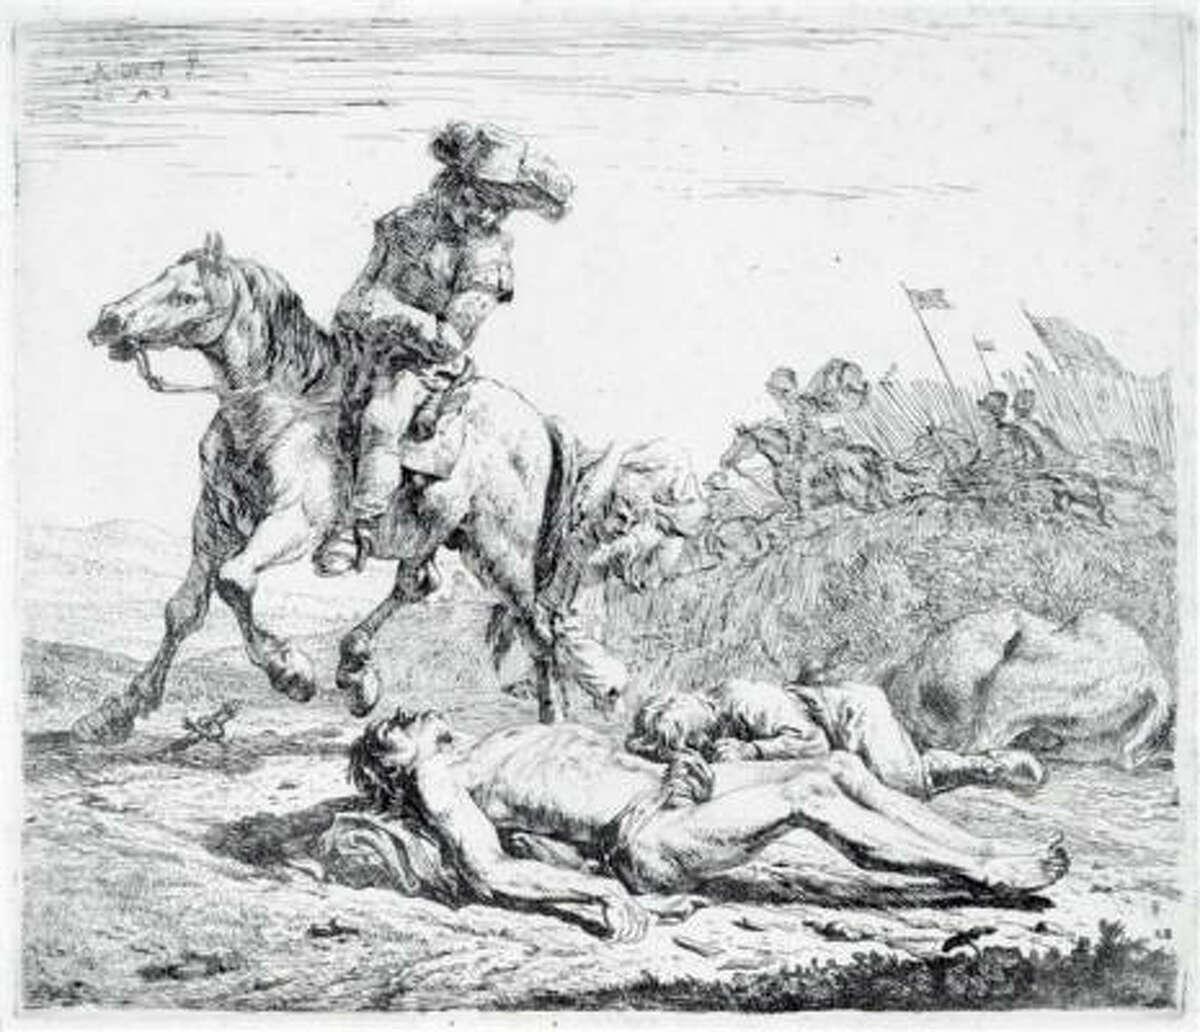 Dutch artist Karel Dujardin's etching The Battlefield draws its power from the sight of a war casualty.